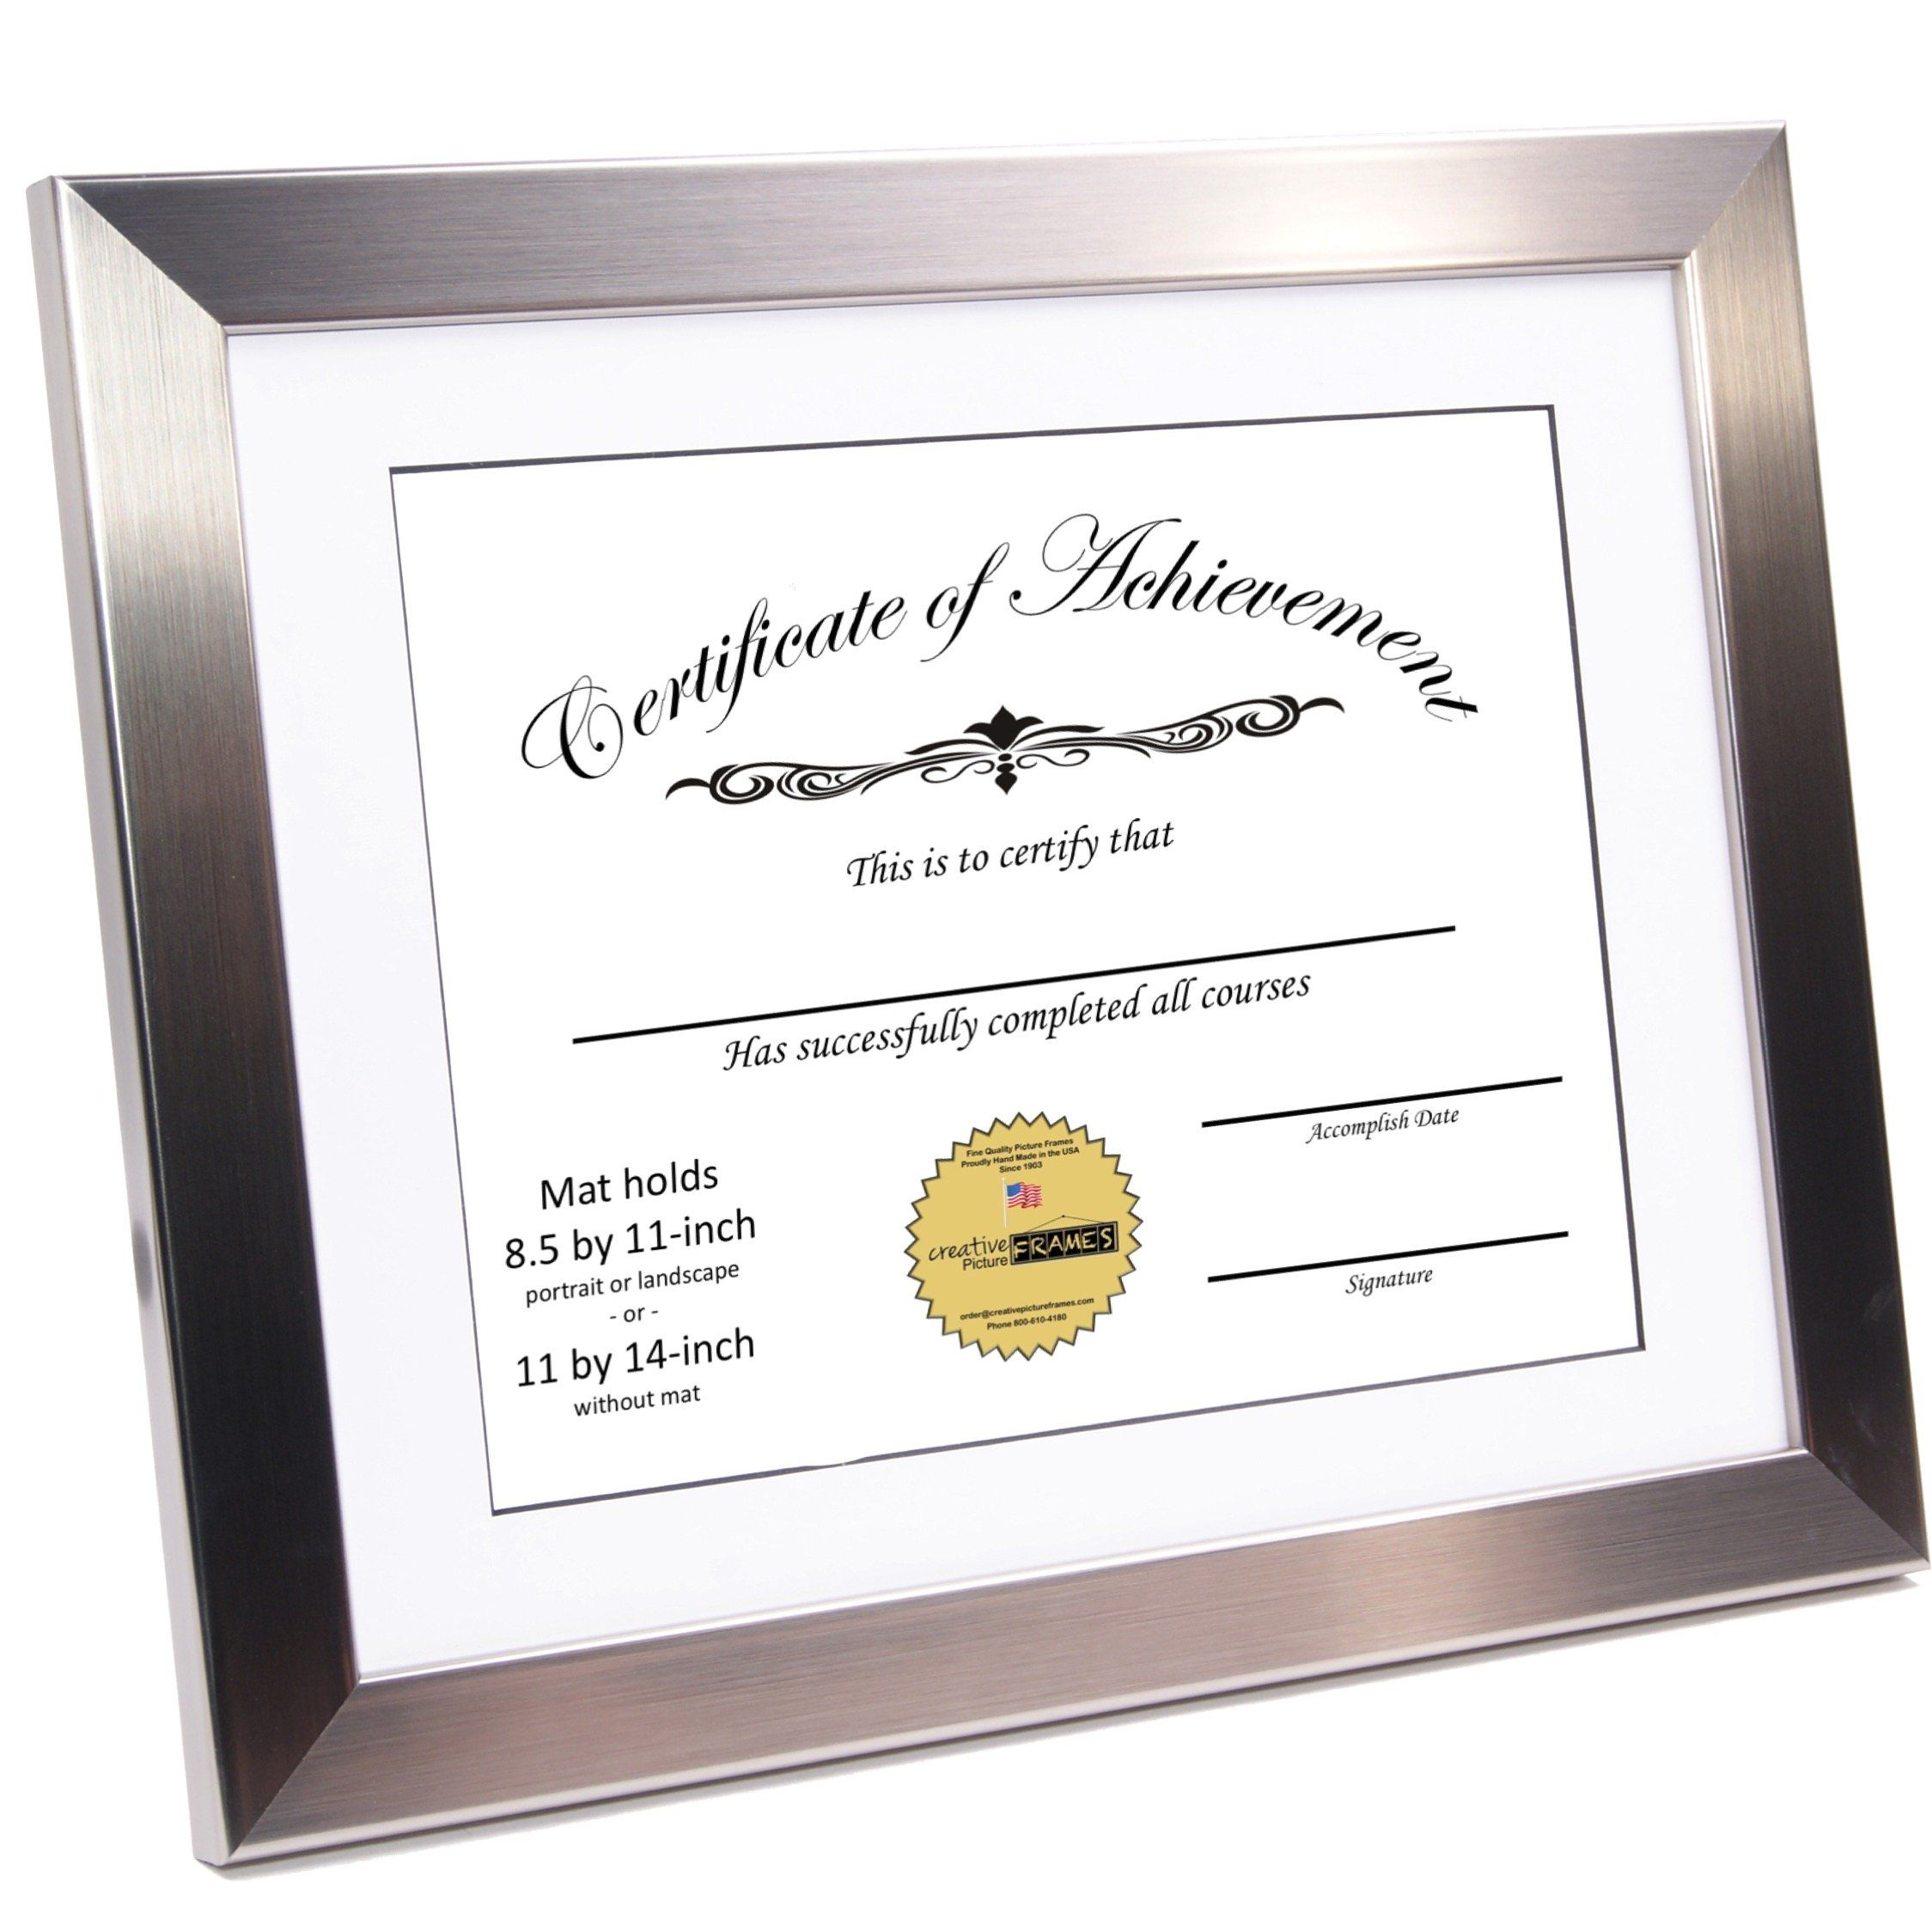 Creativepf Y8sh11x14ssw Stainless Steel Document Frame Displays 8 5 By 11inch With Mat Or 11 By 14inc Diploma Frame Display Document Frame Certificate Frames